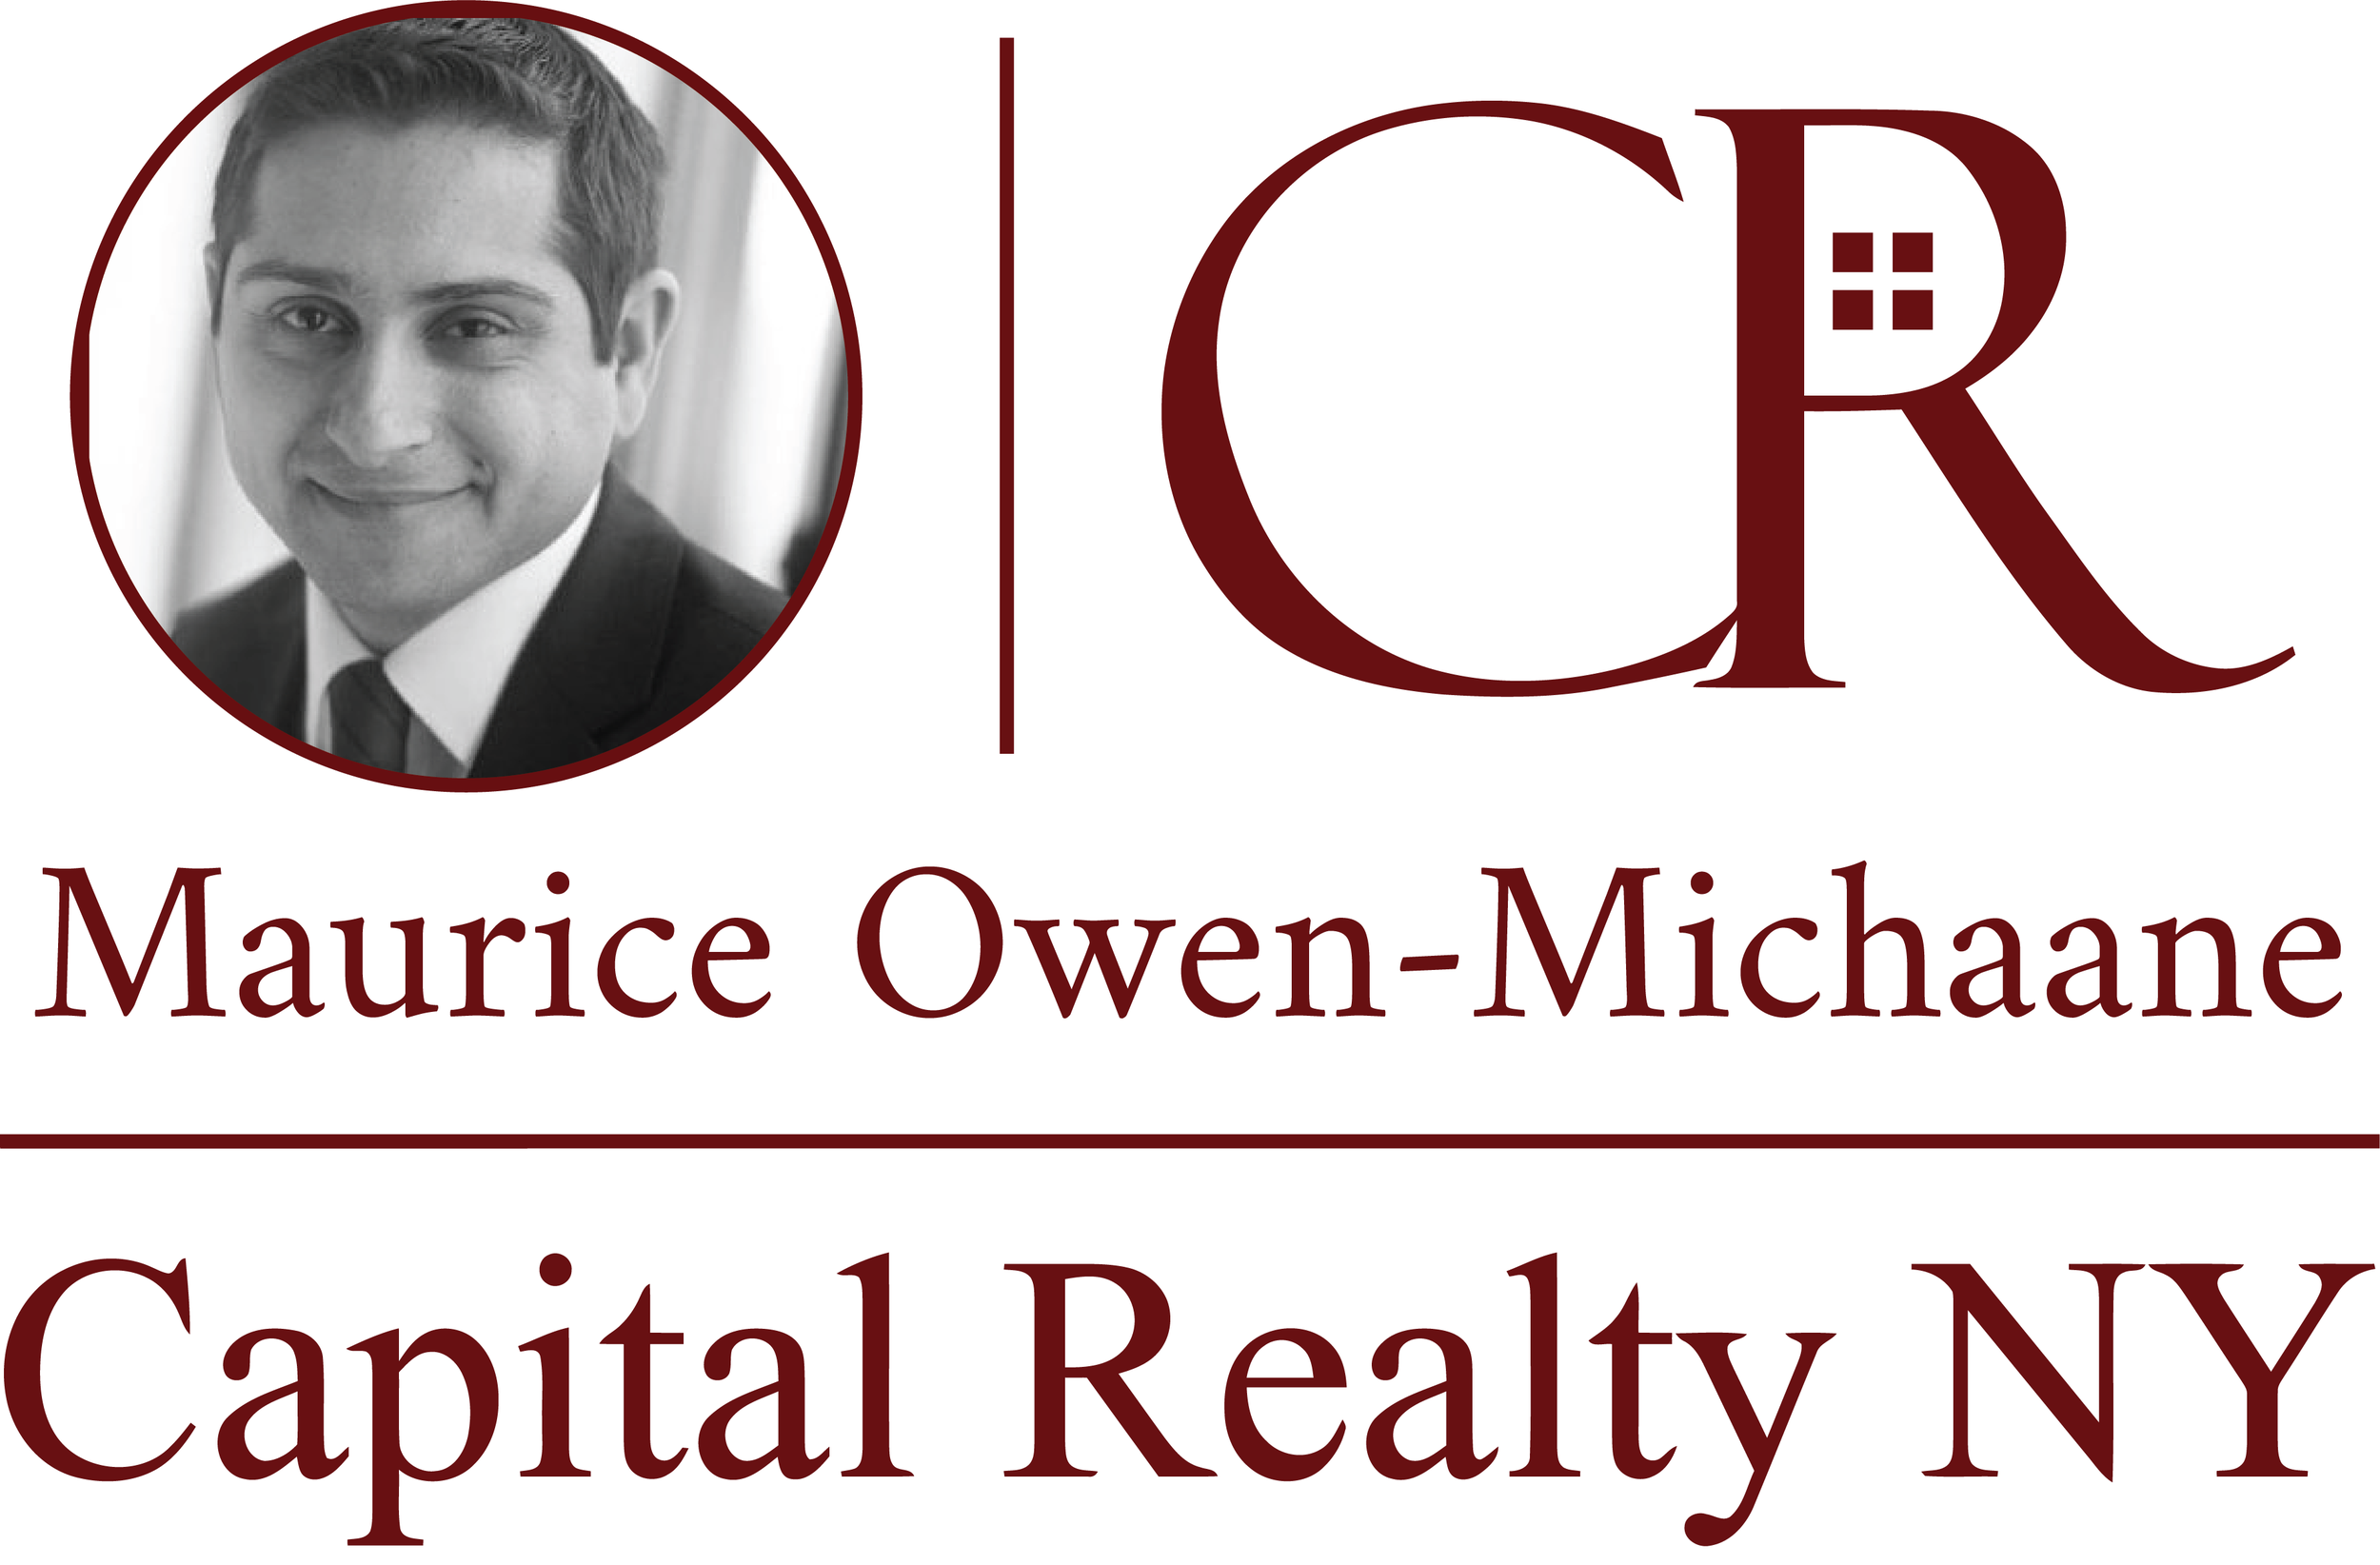 Maurice Owen-Michaane, Licensed Real Estate Broker & Pelham Resident - 917.842.5552 / Maurice@capitalrealtyny.com Capitalrealtyny.comMaurice Owen-Michaane, Managing Broker & Owner of Capital Realty NY, has over a decade of experience in the Real Estate market. Coupled with his Wall Street & Finance background, Maurice works with buyers, sellers, investors, and landlords, combining personalized client-focused services with innovative ideas and a positive attitude to consistently deliver results for his clients.Maurice has become the go-to expert on many real estate related topics in Pelham, and has introduced innovative marketing approaches that move his listings into contract in record time. The key to Maurice's success is an understanding that every client has different needs and desires. Maurice appreciates that real estate involves more than just economic decisions – buying or selling, is a big step in life, and must be done the right way. With this in mind, he is committed to opening the right doors to allow his clients to make the decisions that only they can make. Maurice's attention to detail, innovative thinking, keen negotiating skills and accessibility are vital components to achieving results. As an insider in the New York & Westchester real estate markets, Maurice's business is completely referral-based.Maurice Owen-Michaane holds a B.A. in government from Hamilton College and an M.B.A. in finance from Baruch College. Maurice serves on the Site-Based Council at Siwanoy Elementary School, is a member of the Siwanoy School PTA, a member of the Pelham Manor Zoning & Appeals Board, and a member of the Alumni Council & President of the Class of 2003 for Hamilton College. He is also a member of the Friends of Pelham Library Committee, the Pelham Jewish Center, and serves as a Director on the Hudson Gateway Association of Realtors MLS (HGMLS) and currently co-chairs HGAR's Member Experience Committee.He and his spouse are the proud parents of three young childr